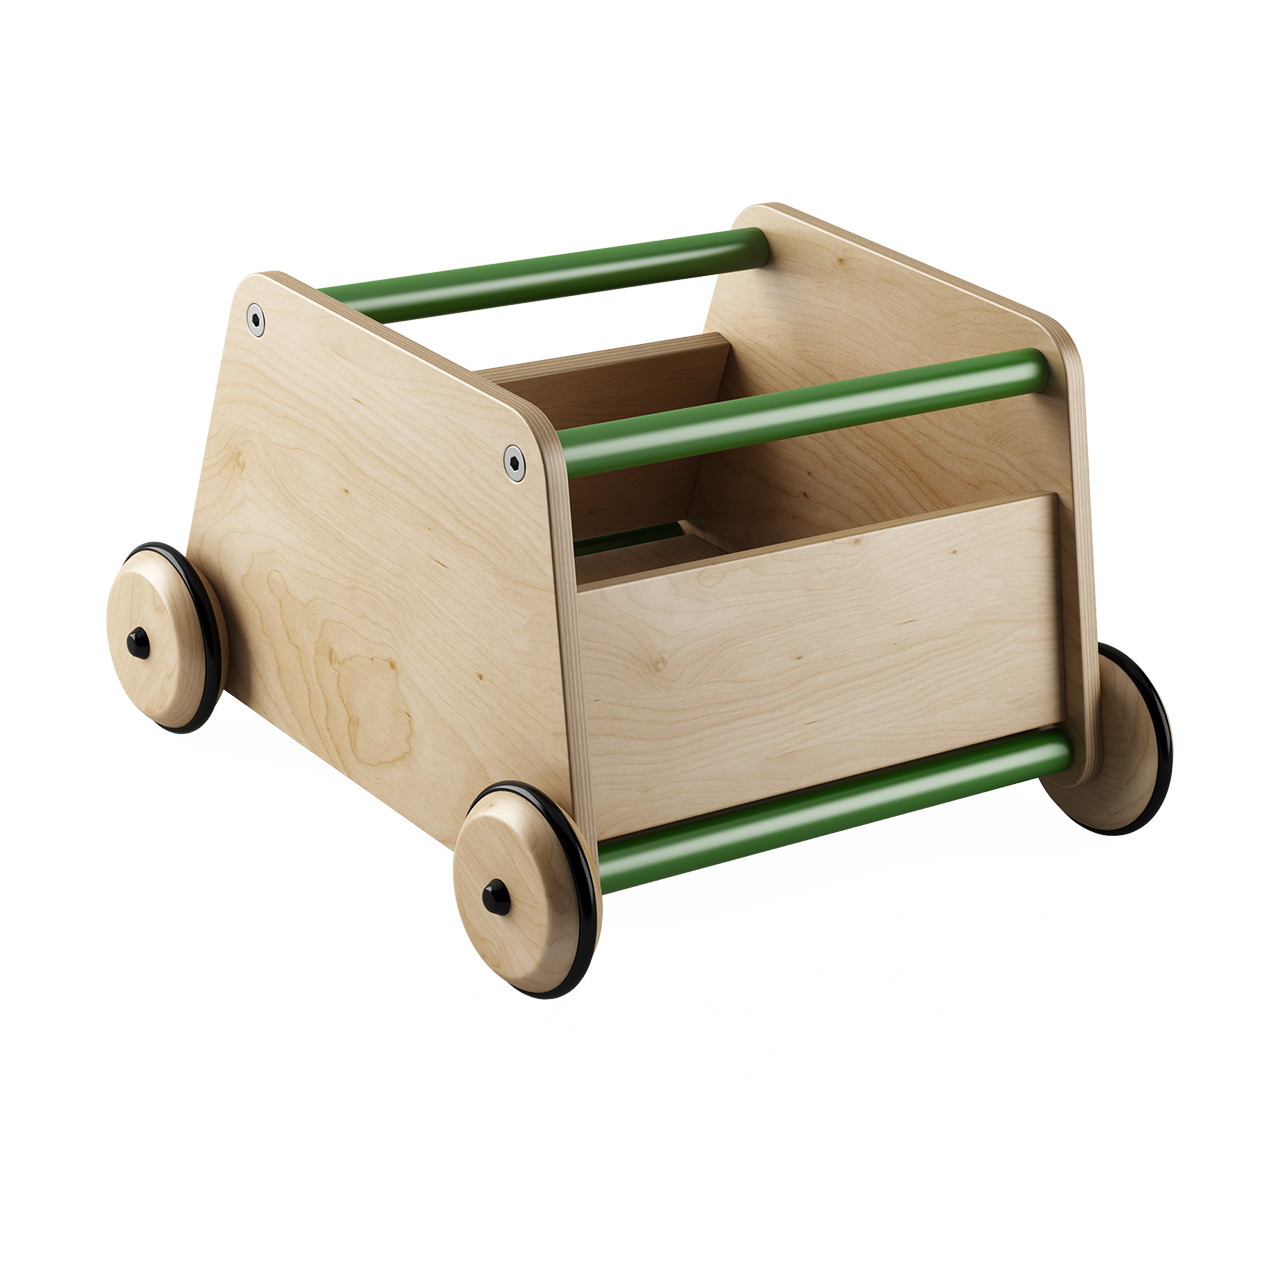 Ottawa Toy Storage Box by Made Design